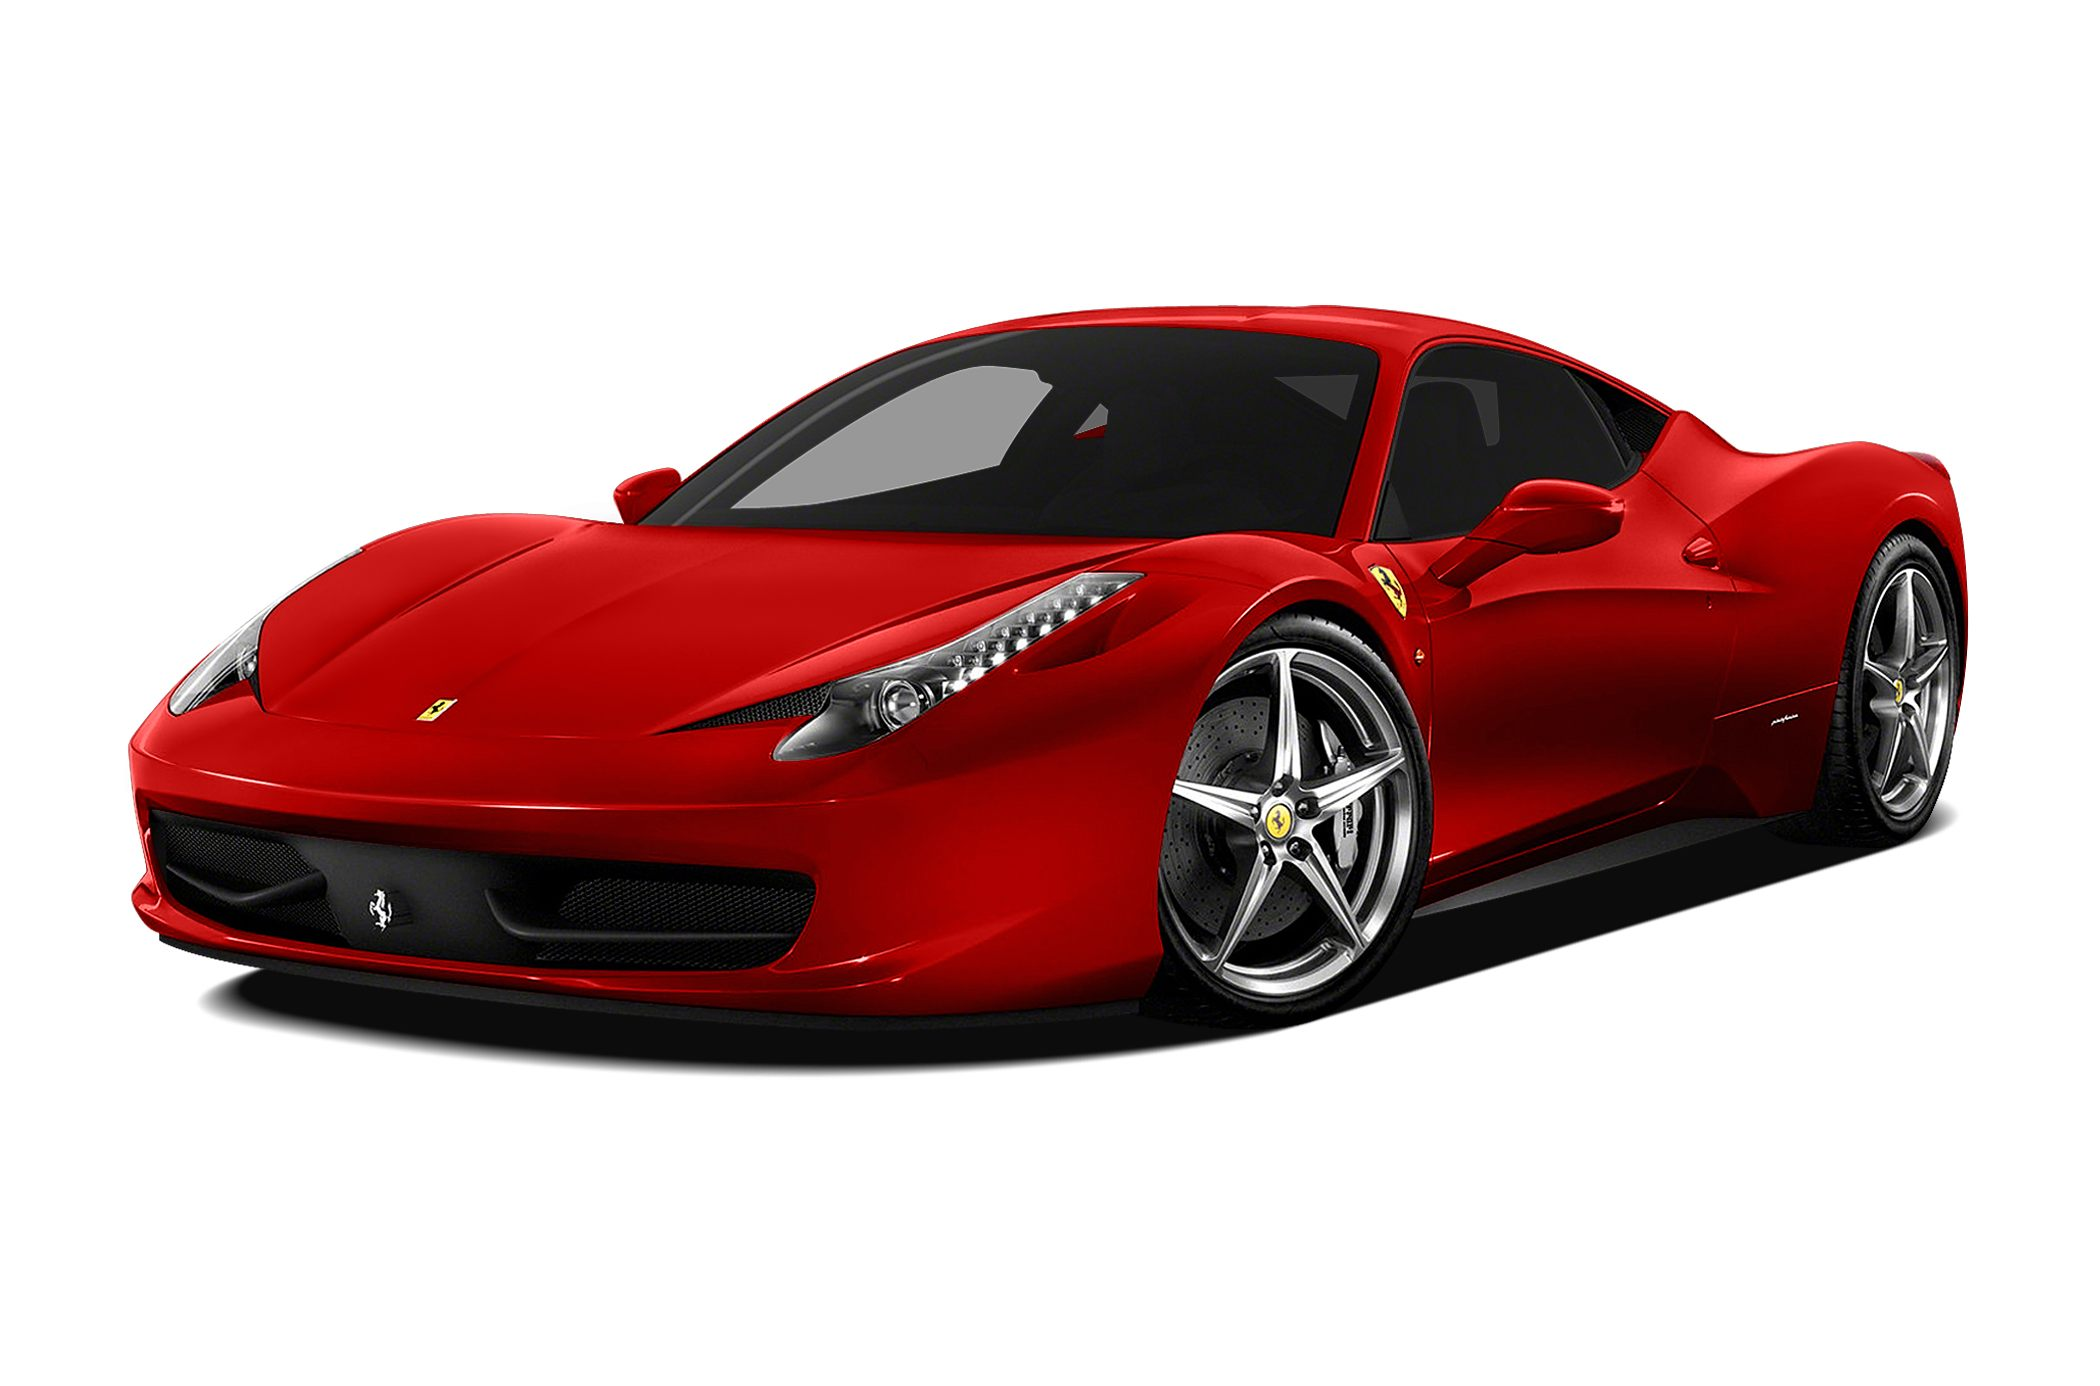 2011 Ferrari 458 Italia